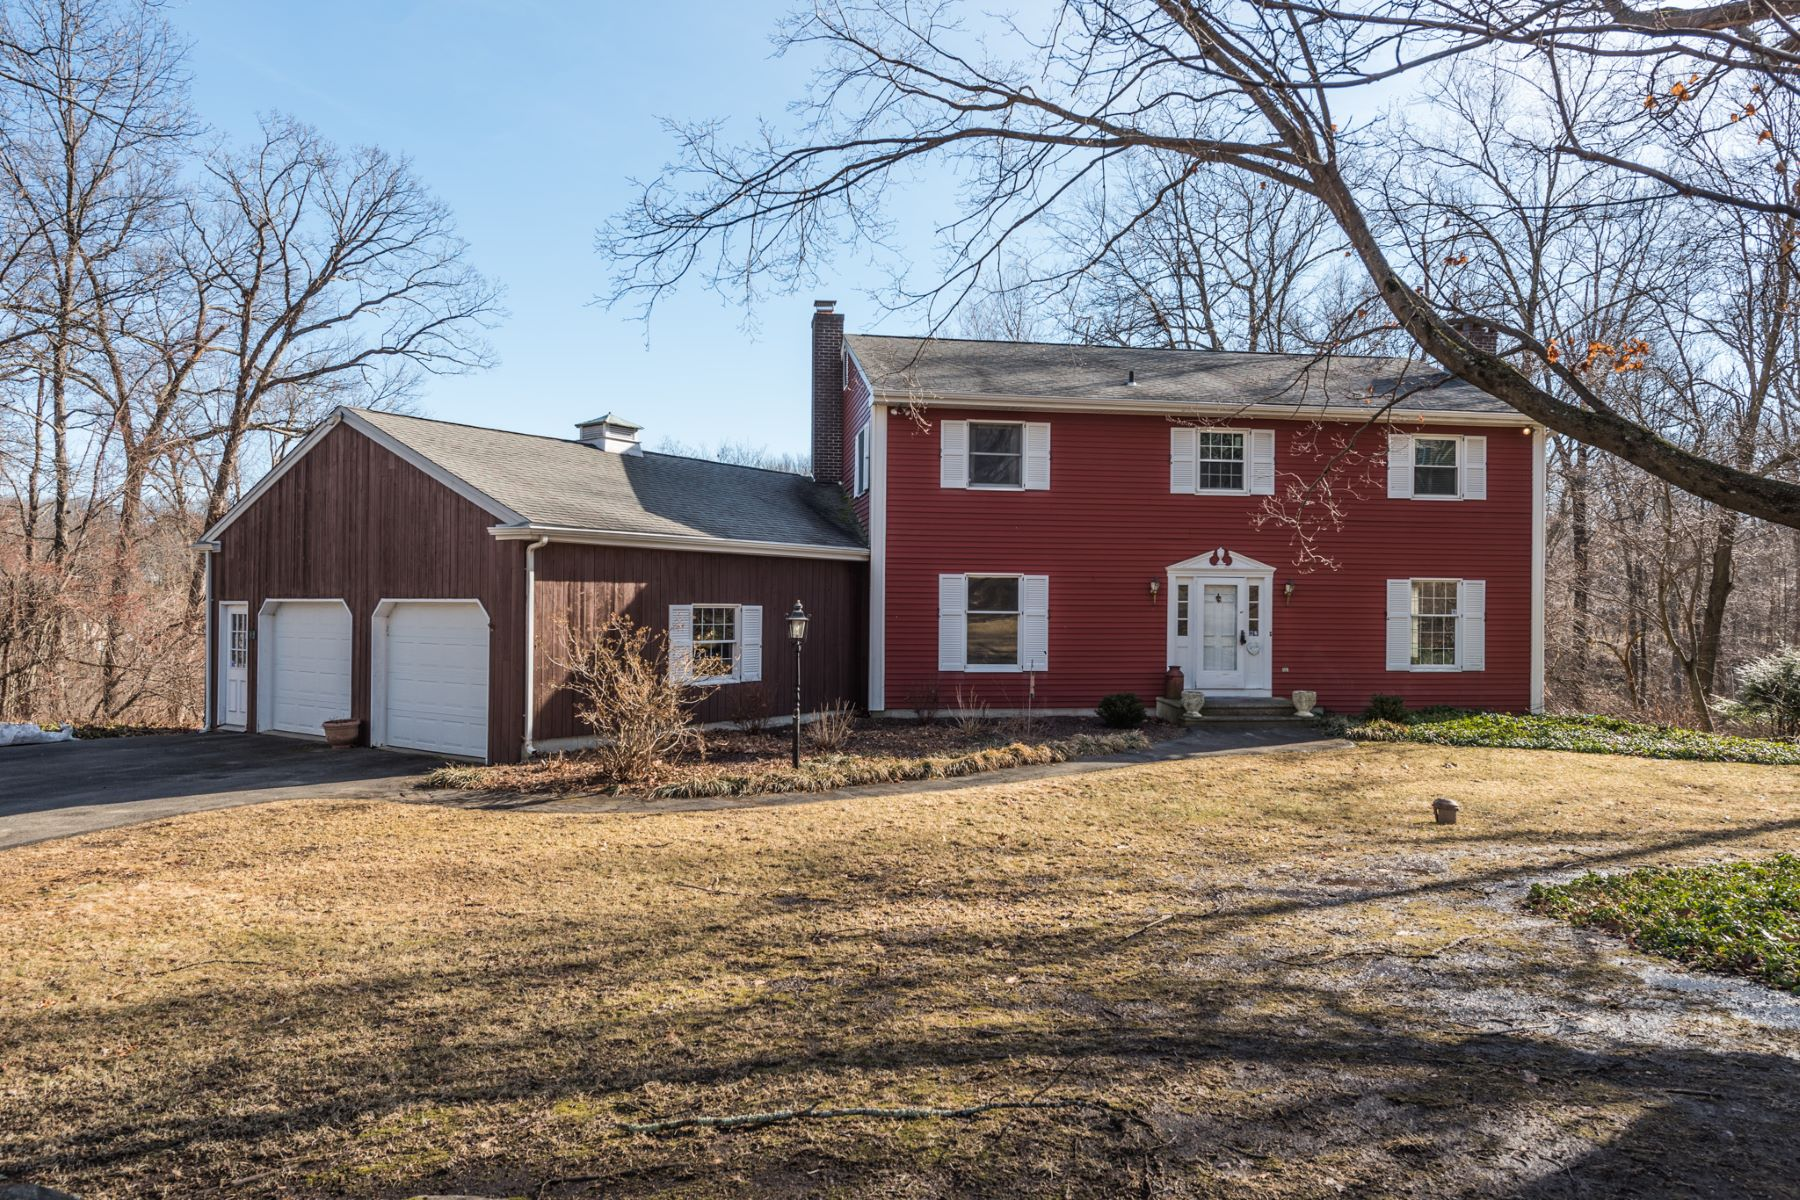 Single Family Home for Sale at Wedgewood Estates 42 Wedgewood Drive Danbury, Connecticut 06811 United States